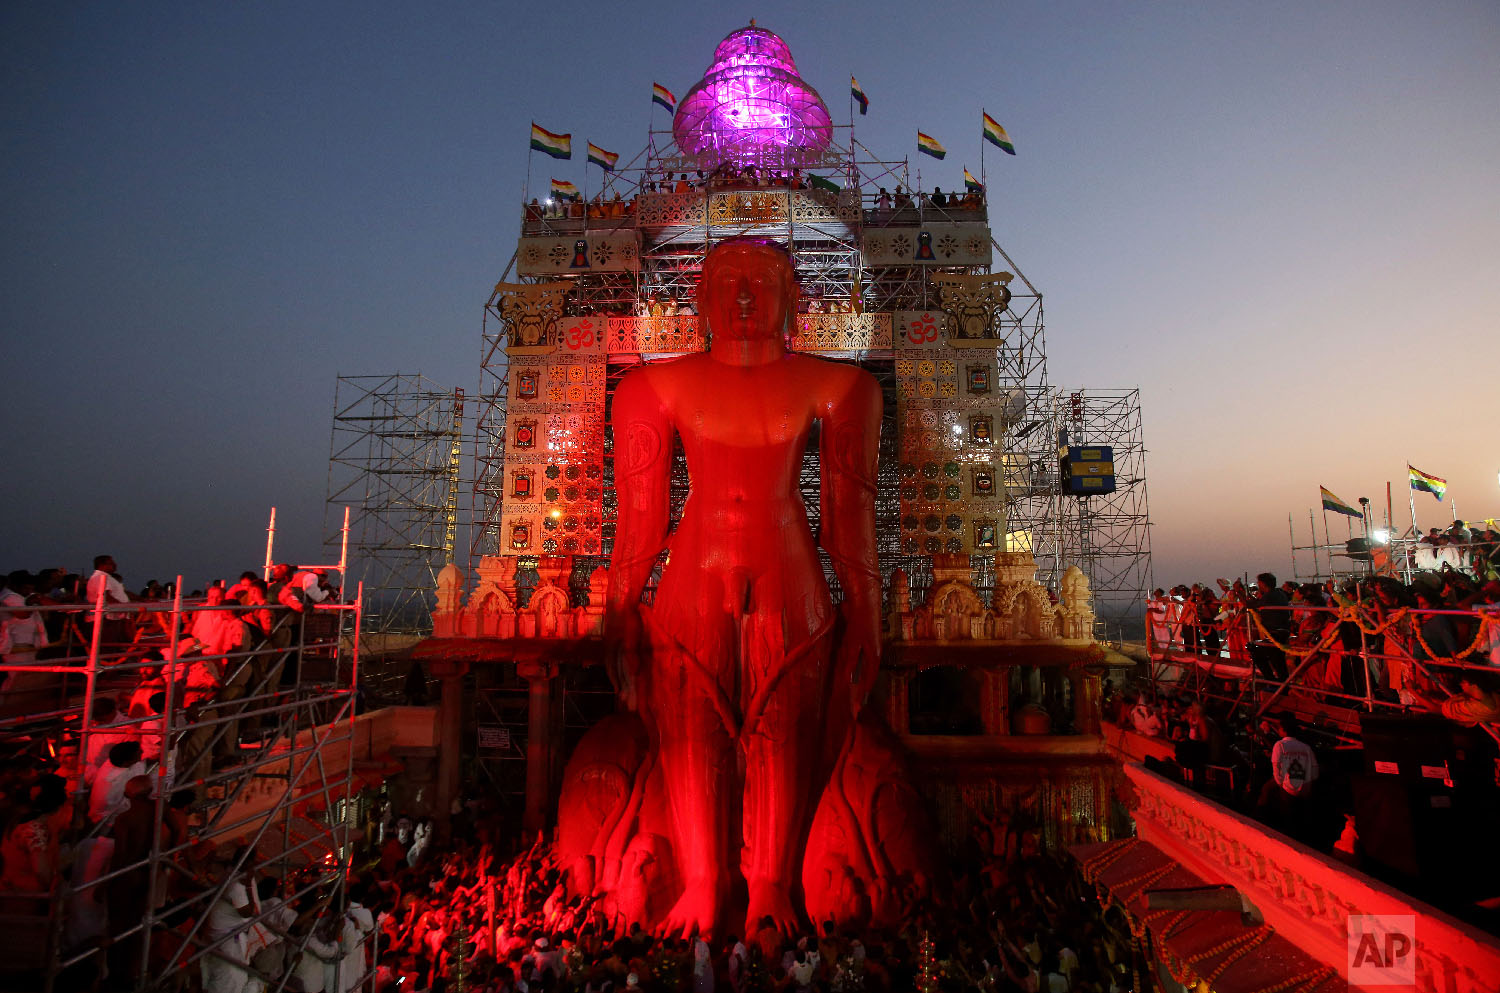 Vermilion runs down the 58.8-foot monolithic statue of Jain god Gomateshwara at Shravanabelagola 145 kilometers (91 miles) west of Bangalore, India, Saturday, Feb. 17, 2018. Hundreds of thousands of Jain devotees will attend the Mahamastabhisheka or head anointing ceremony of the 1,037-year-old statue Gomateswara (Lord Bahubali), a tradition held every 12 years since AD 981. The 1,037-year-old statue is bathed with milk, turmeric, vermilion, saffron, sandalwood paste, powder of medicinal herbs and gold coins. (AP Photo/Aijaz Rahi)